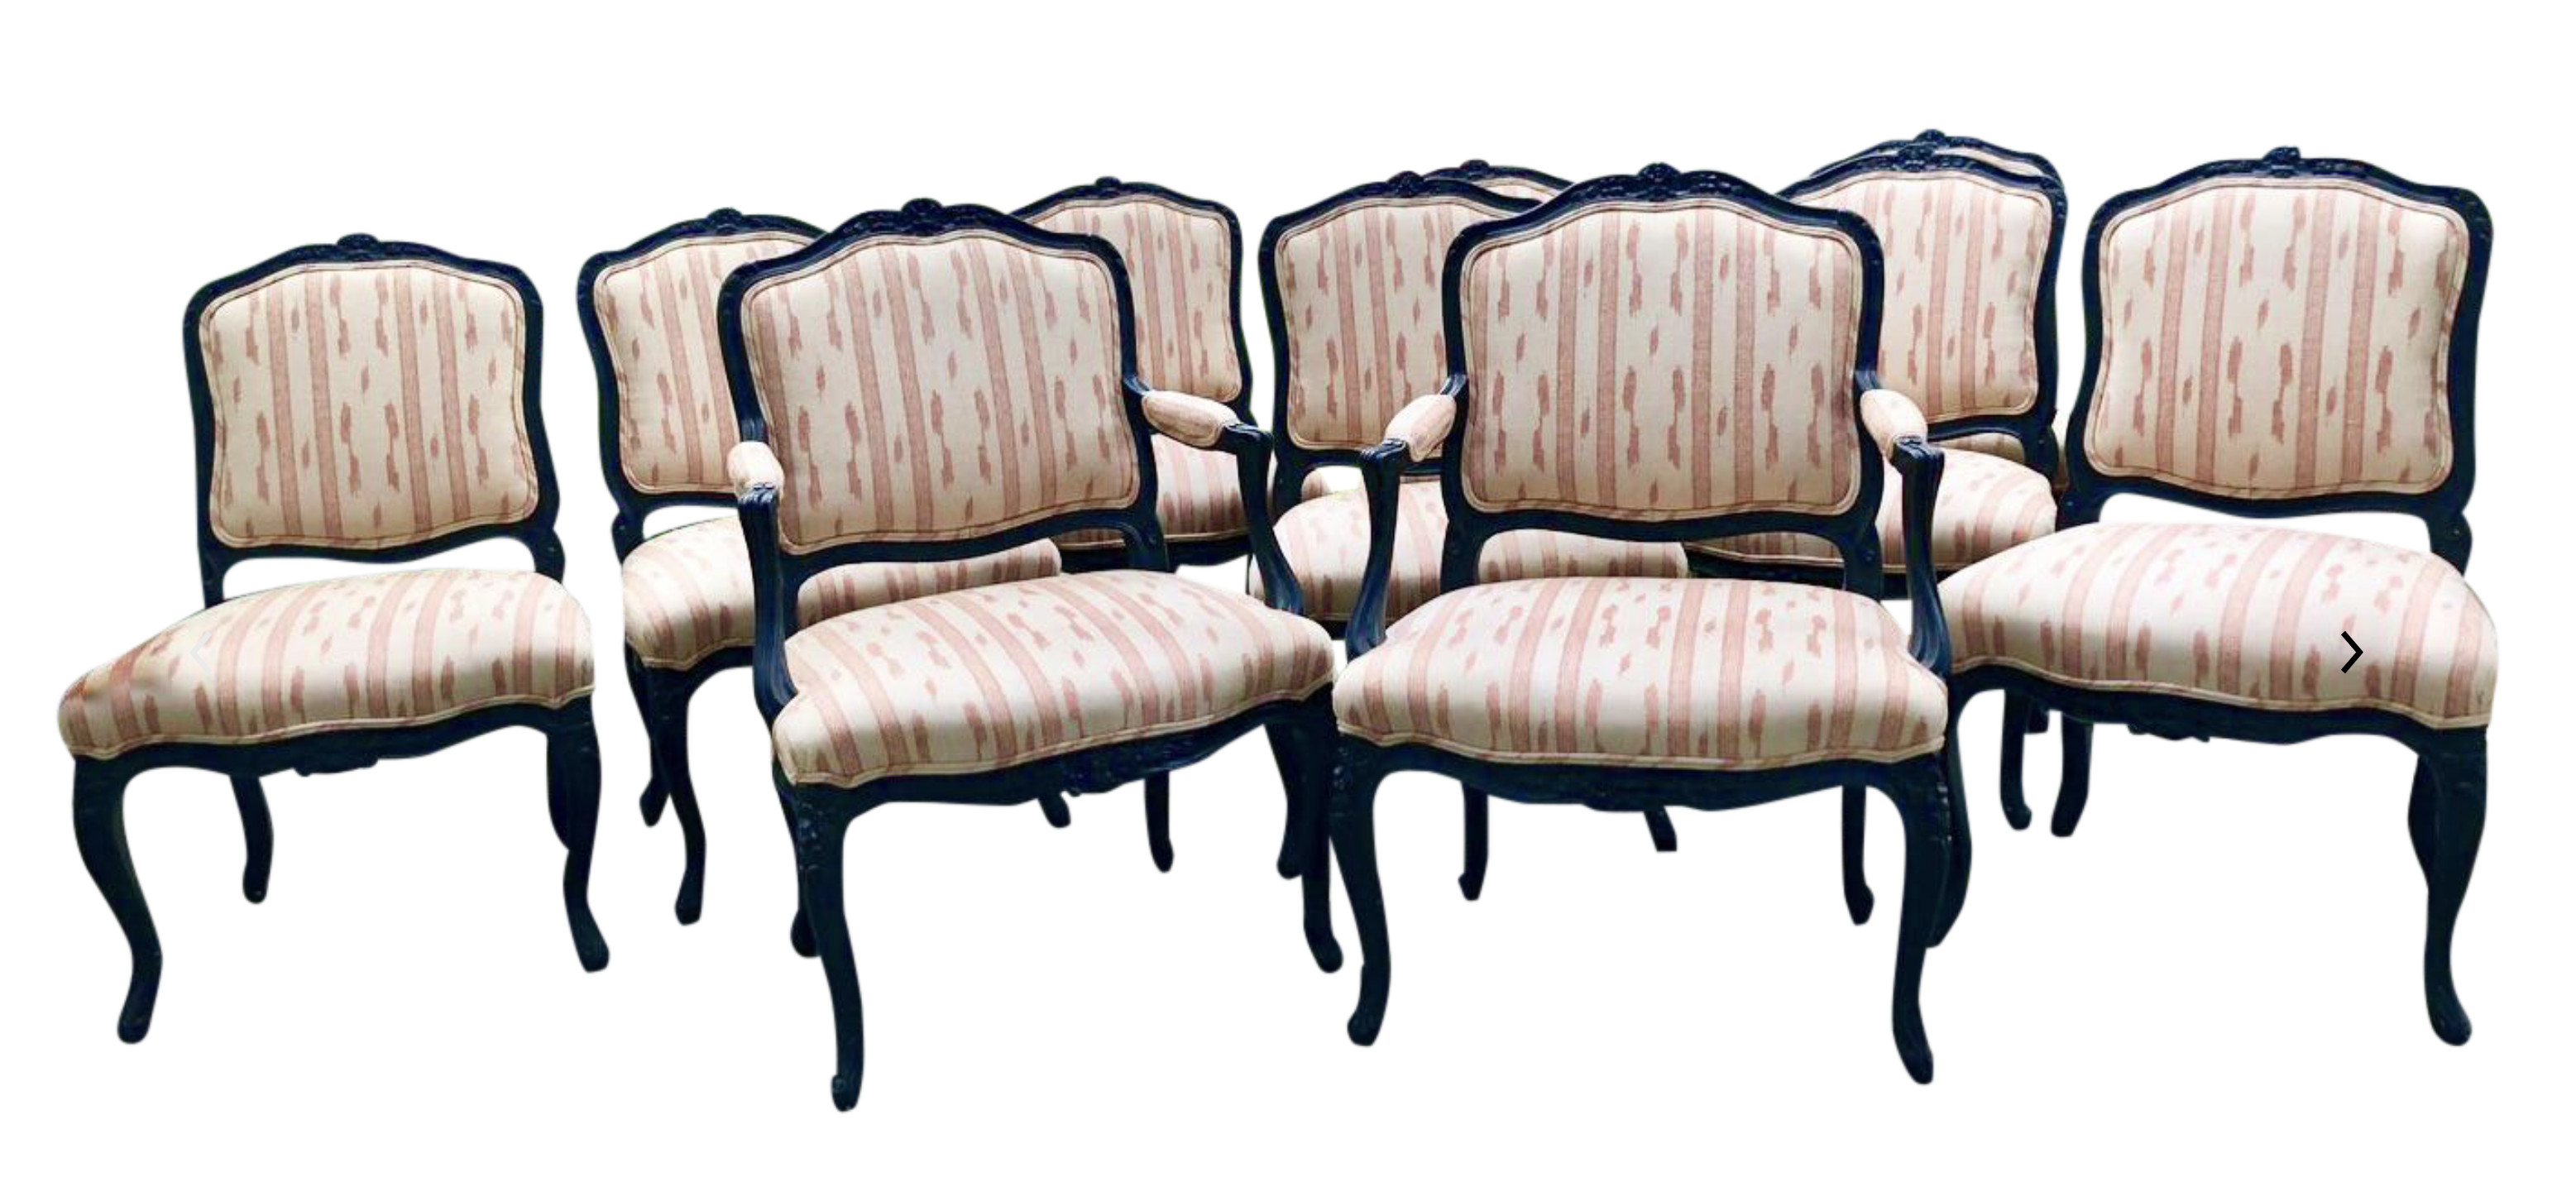 Louis XV Style Black Dining Chairs w/ Ikat Upholstery